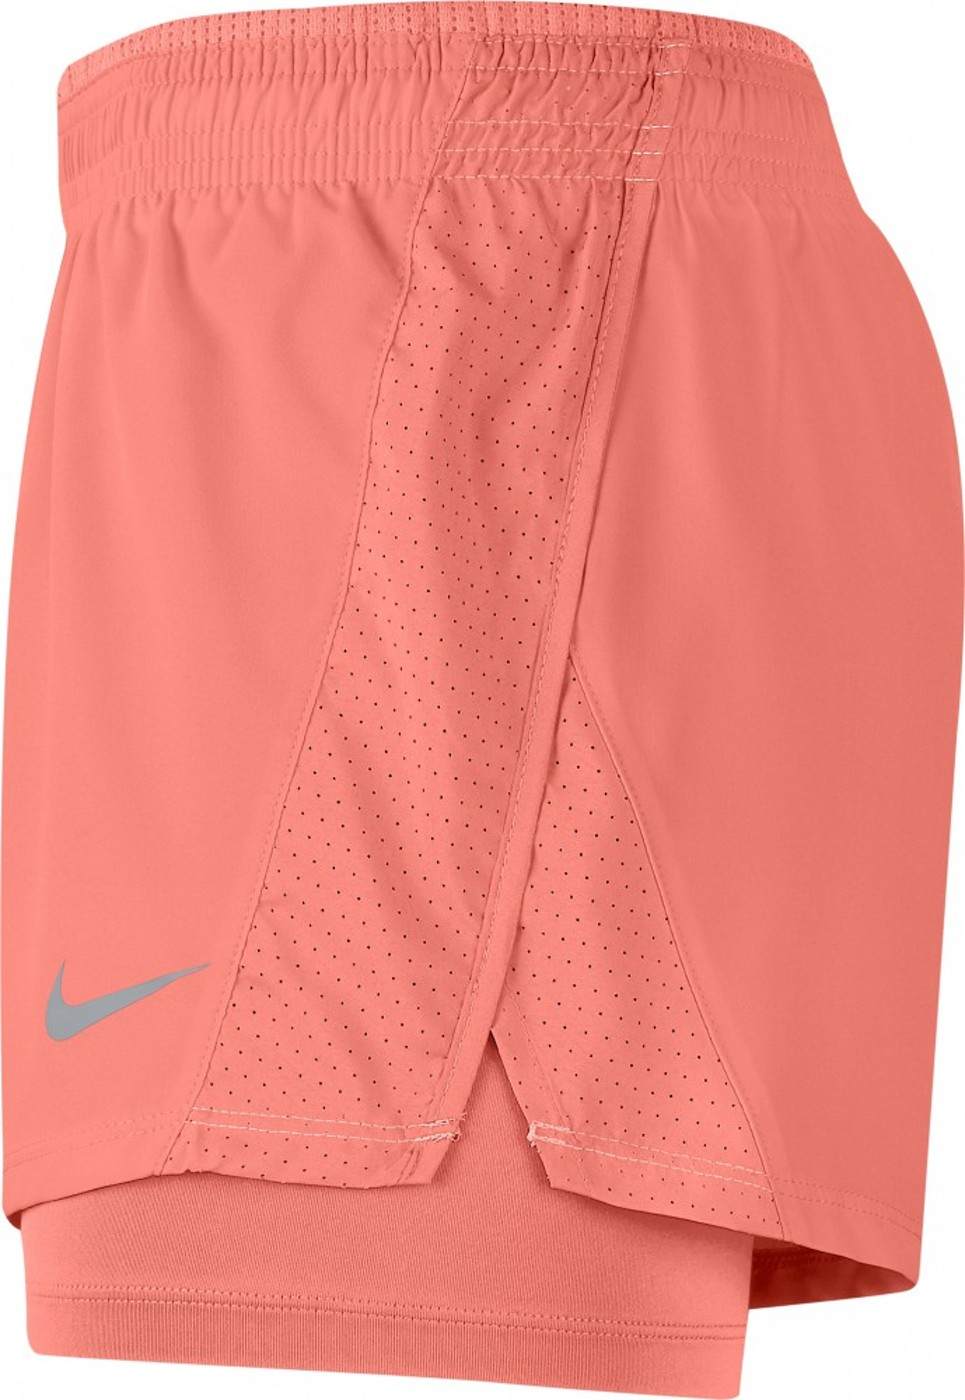 Nike 2-In-1 Running Sh - Damen